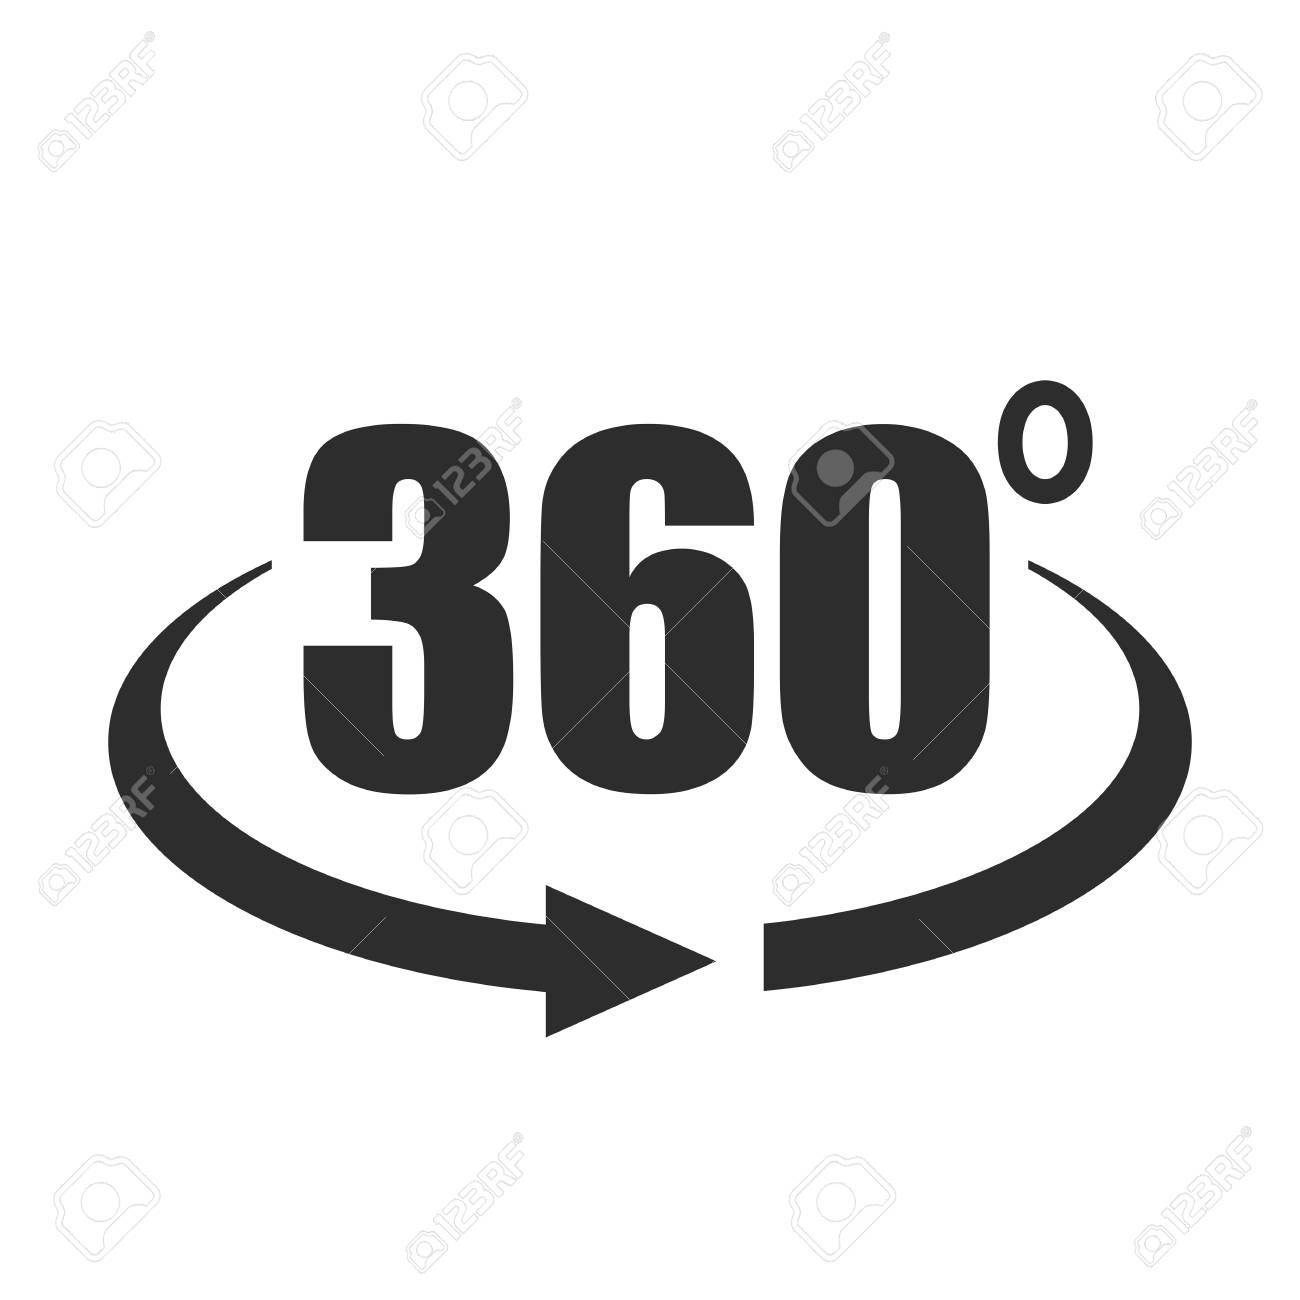 360 degree view vector icon - 114352483